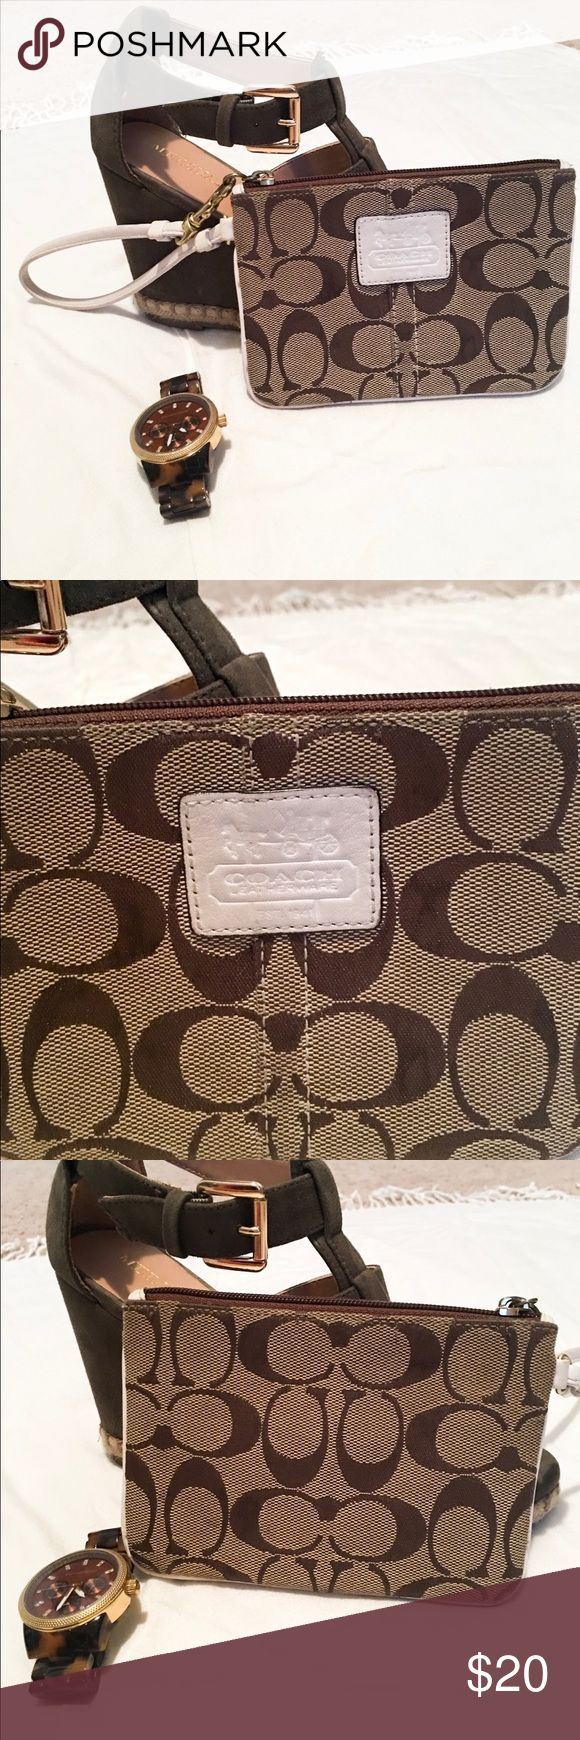 Coach clutch! Small coach clutch!  Great for taking ID and money out for the night or used inside a larger bag as a wallet!!  Does not fit iPhone plus.  Minimal use!  Make me an offer :) Coach Bags Clutches & Wristlets